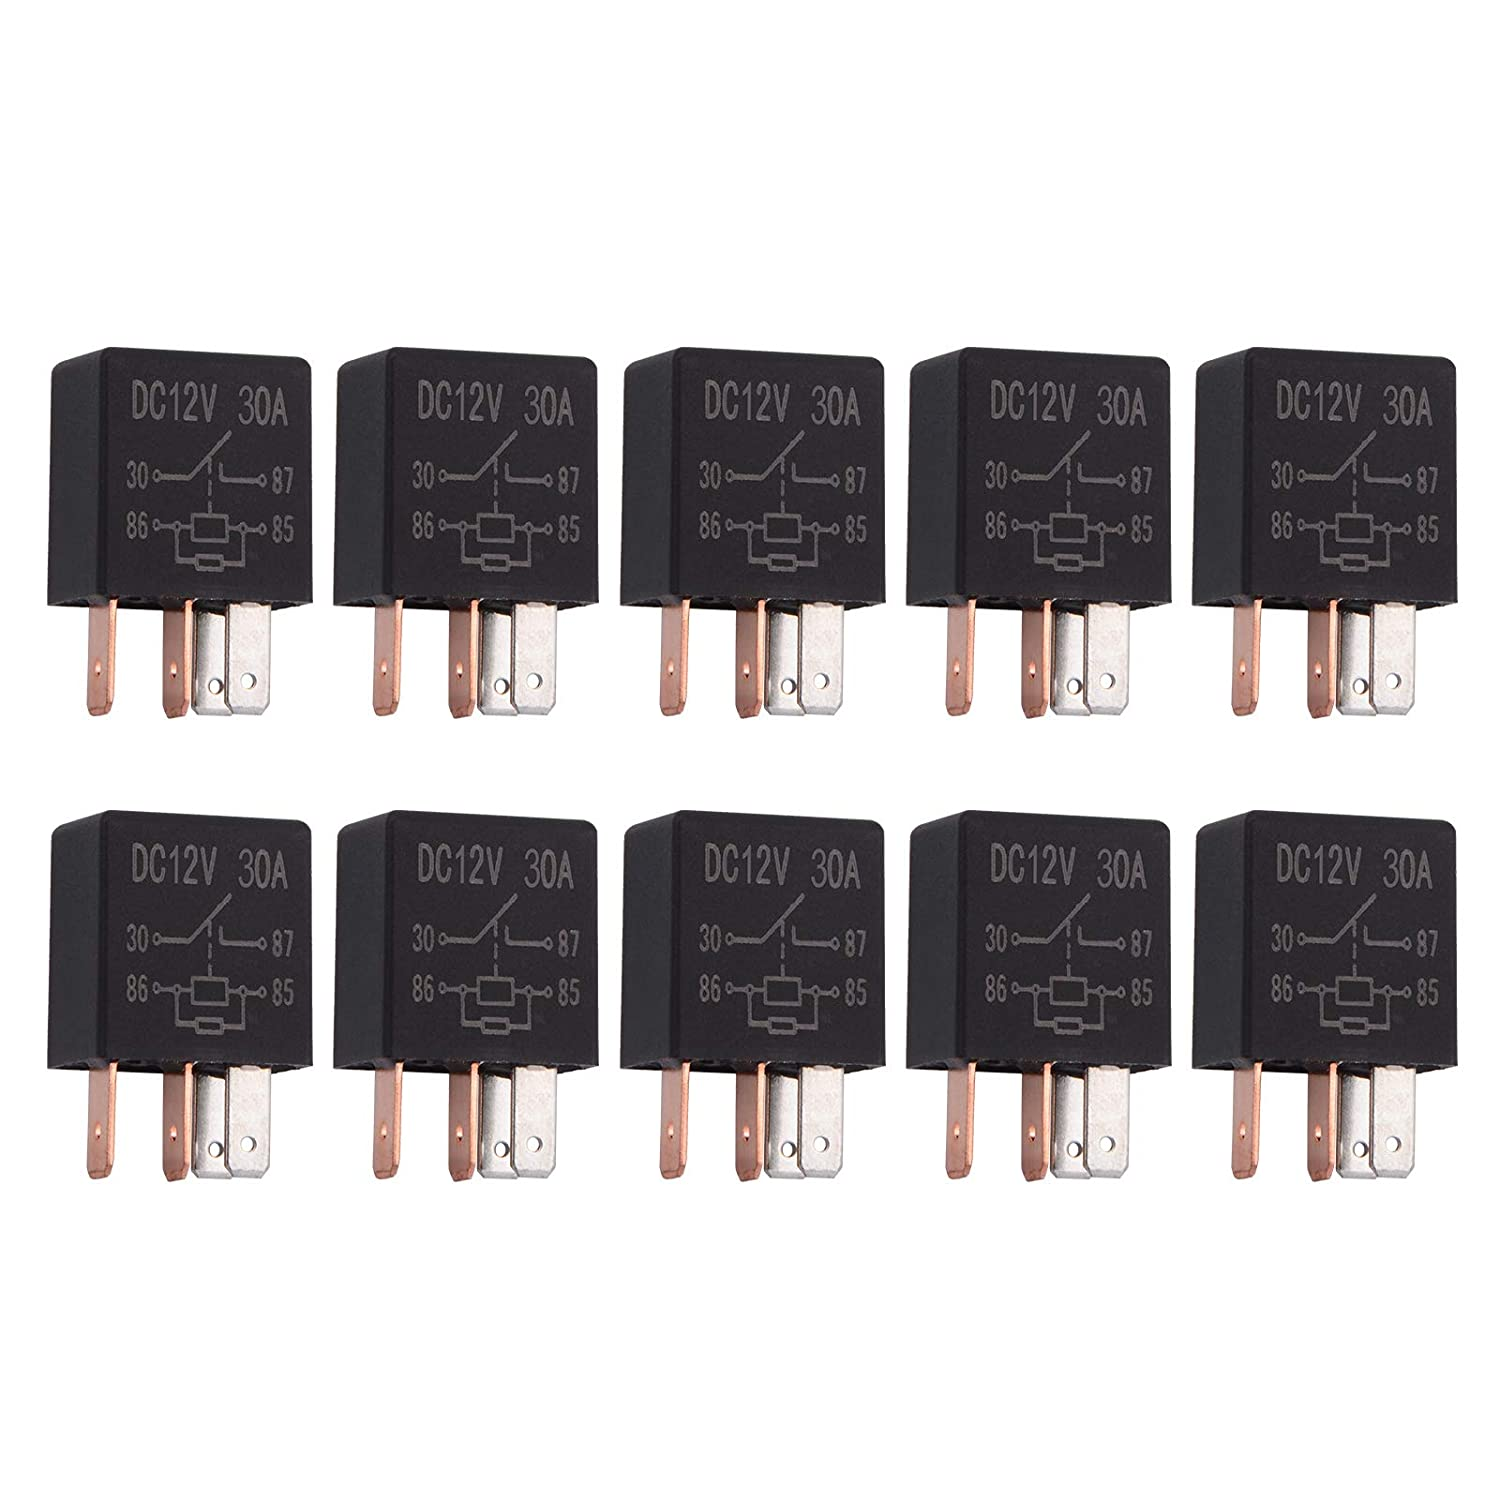 Ehdis 4 Pin 24VDC 30A SPST Multi-Purpose Relay Heavy Duty Standard Relay Kit Pack of 10